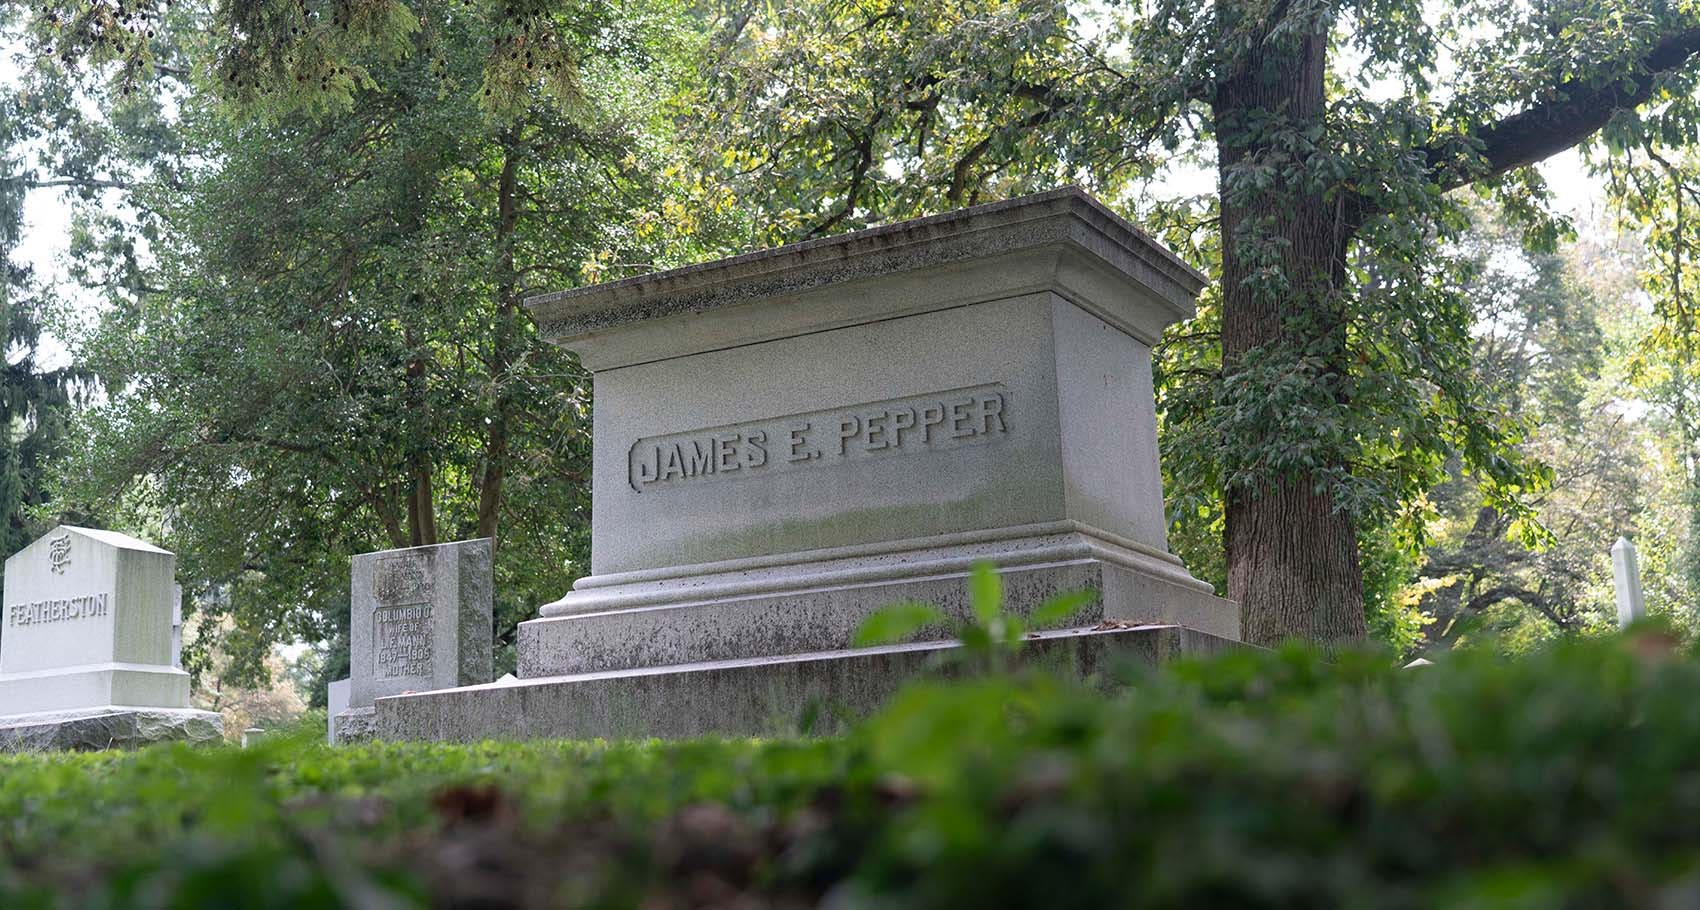 Grave of James E. Pepper, aka Colonel Pepper, the founder of the Old Pepper Distillery